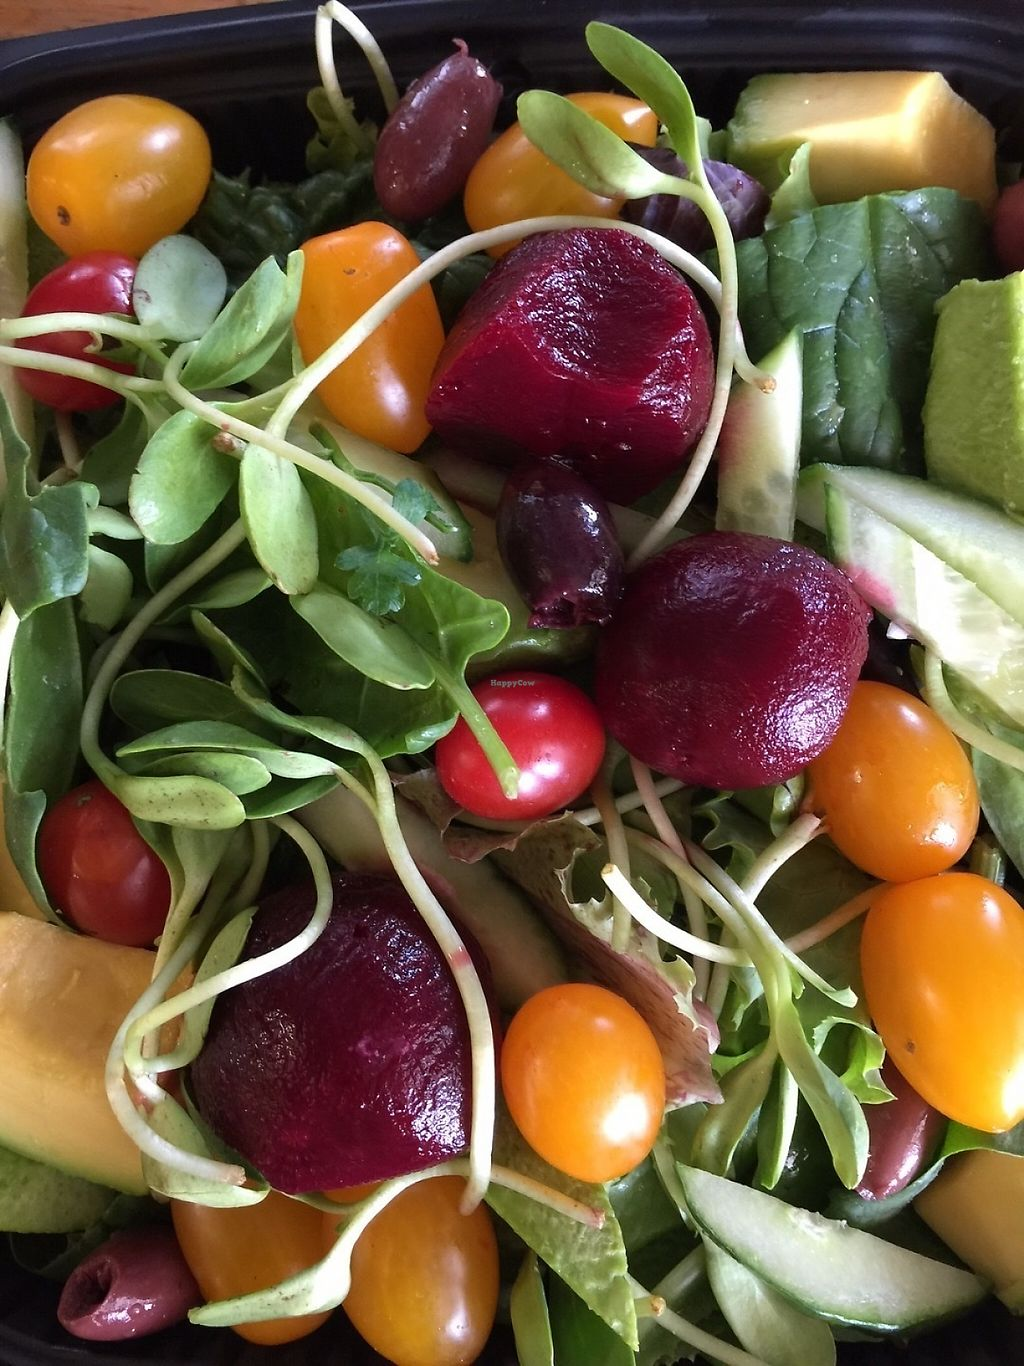 """Photo of Bambi's Country Farm Market  by <a href=""""/members/profile/itsawonderfulday"""">itsawonderfulday</a> <br/>Avocado & More Salad...Fresh Salad Greens, Avocado, Sunflower Sprouts, Baby Pickled Beets, Cucumber, Grape Tomatoes, Black Olives & more <br/> May 7, 2017  - <a href='/contact/abuse/image/91601/256565'>Report</a>"""